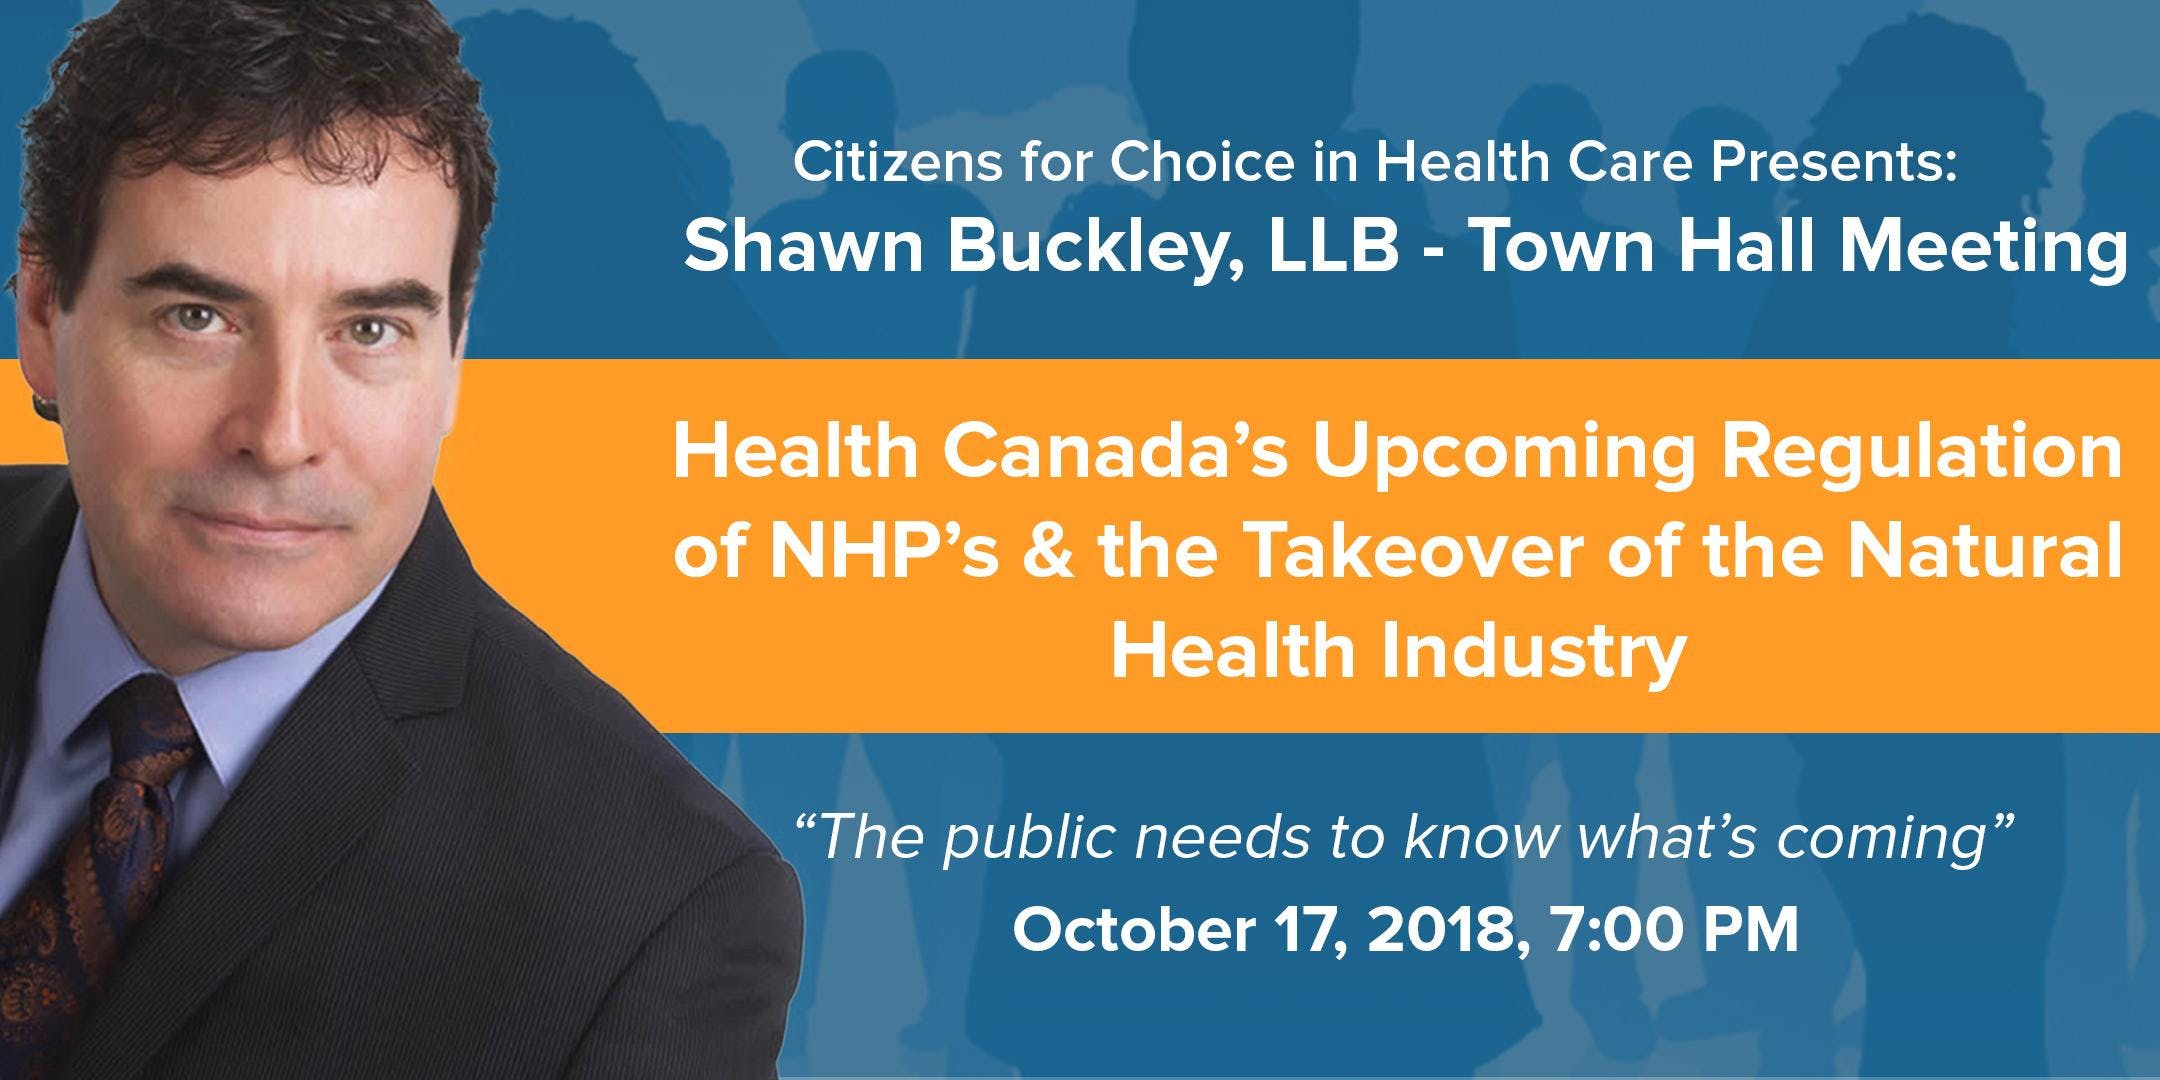 Health Canada's Upcoming Regulation & Takeove